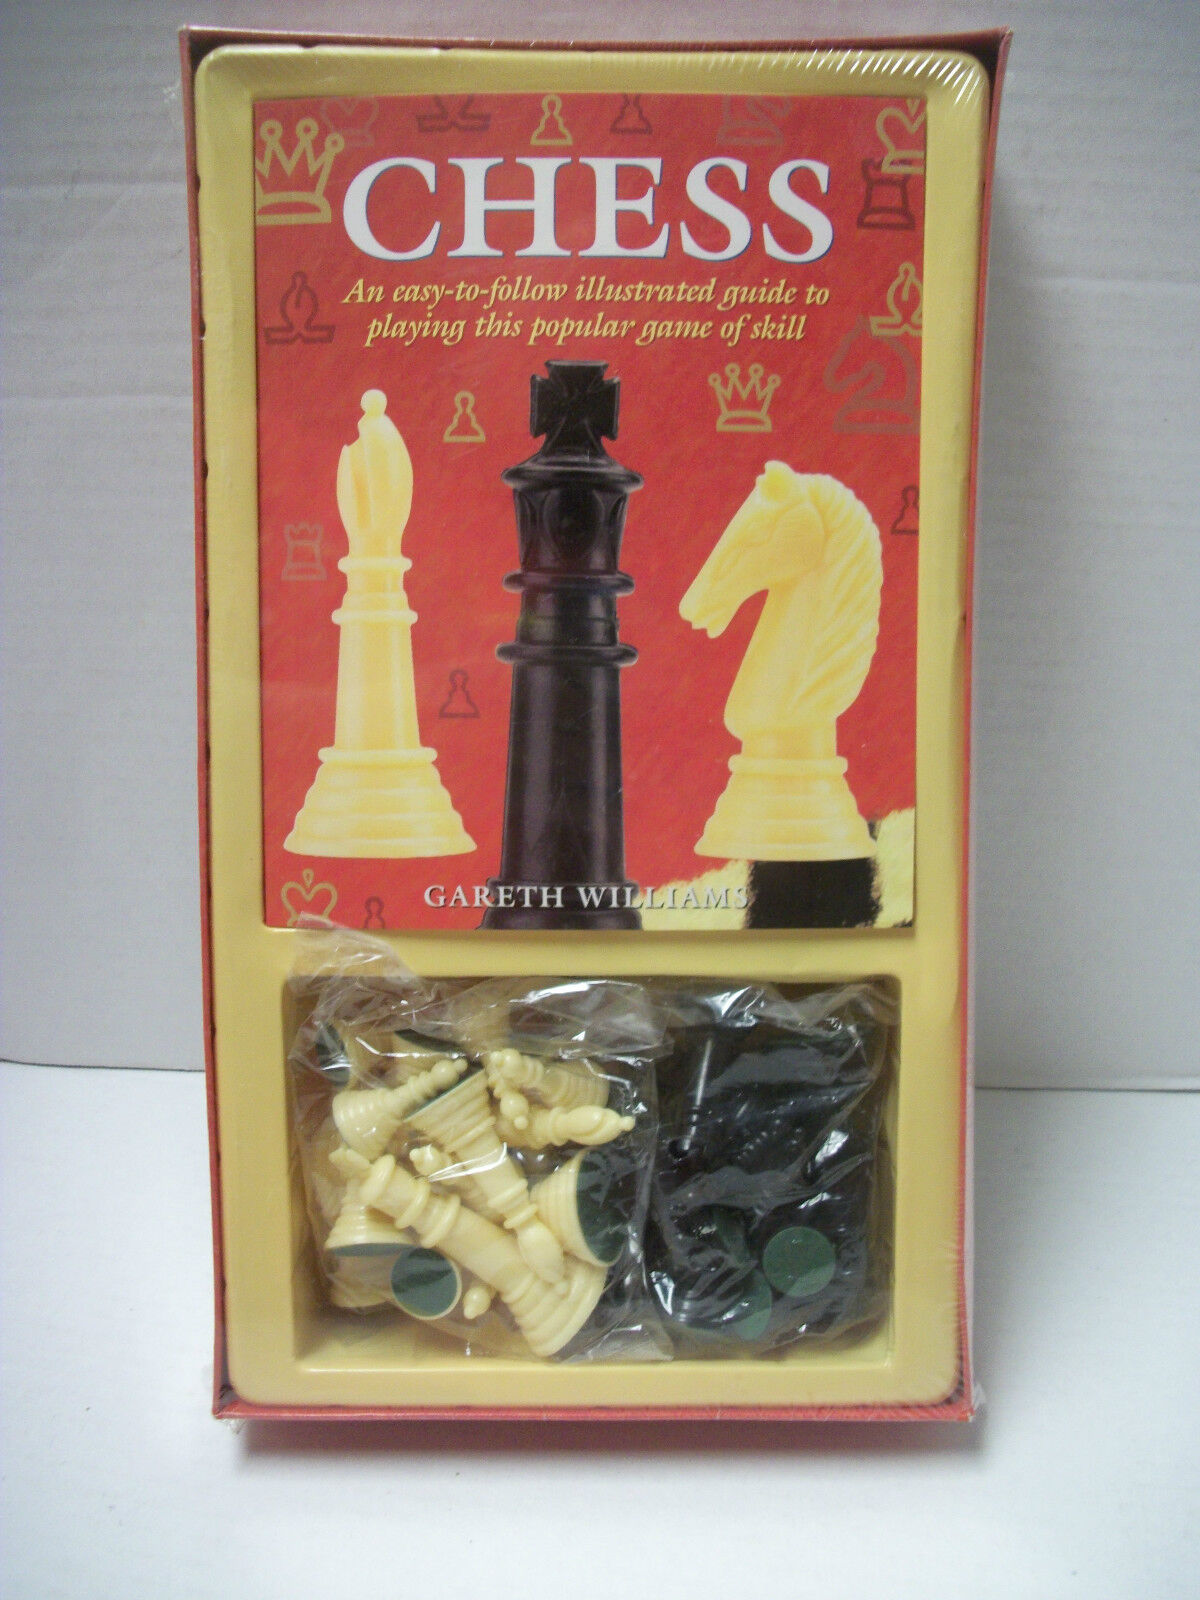 New Sealed Sealed Sealed Chess by Gareth Williams Chess Game and Book Guide 853f4d